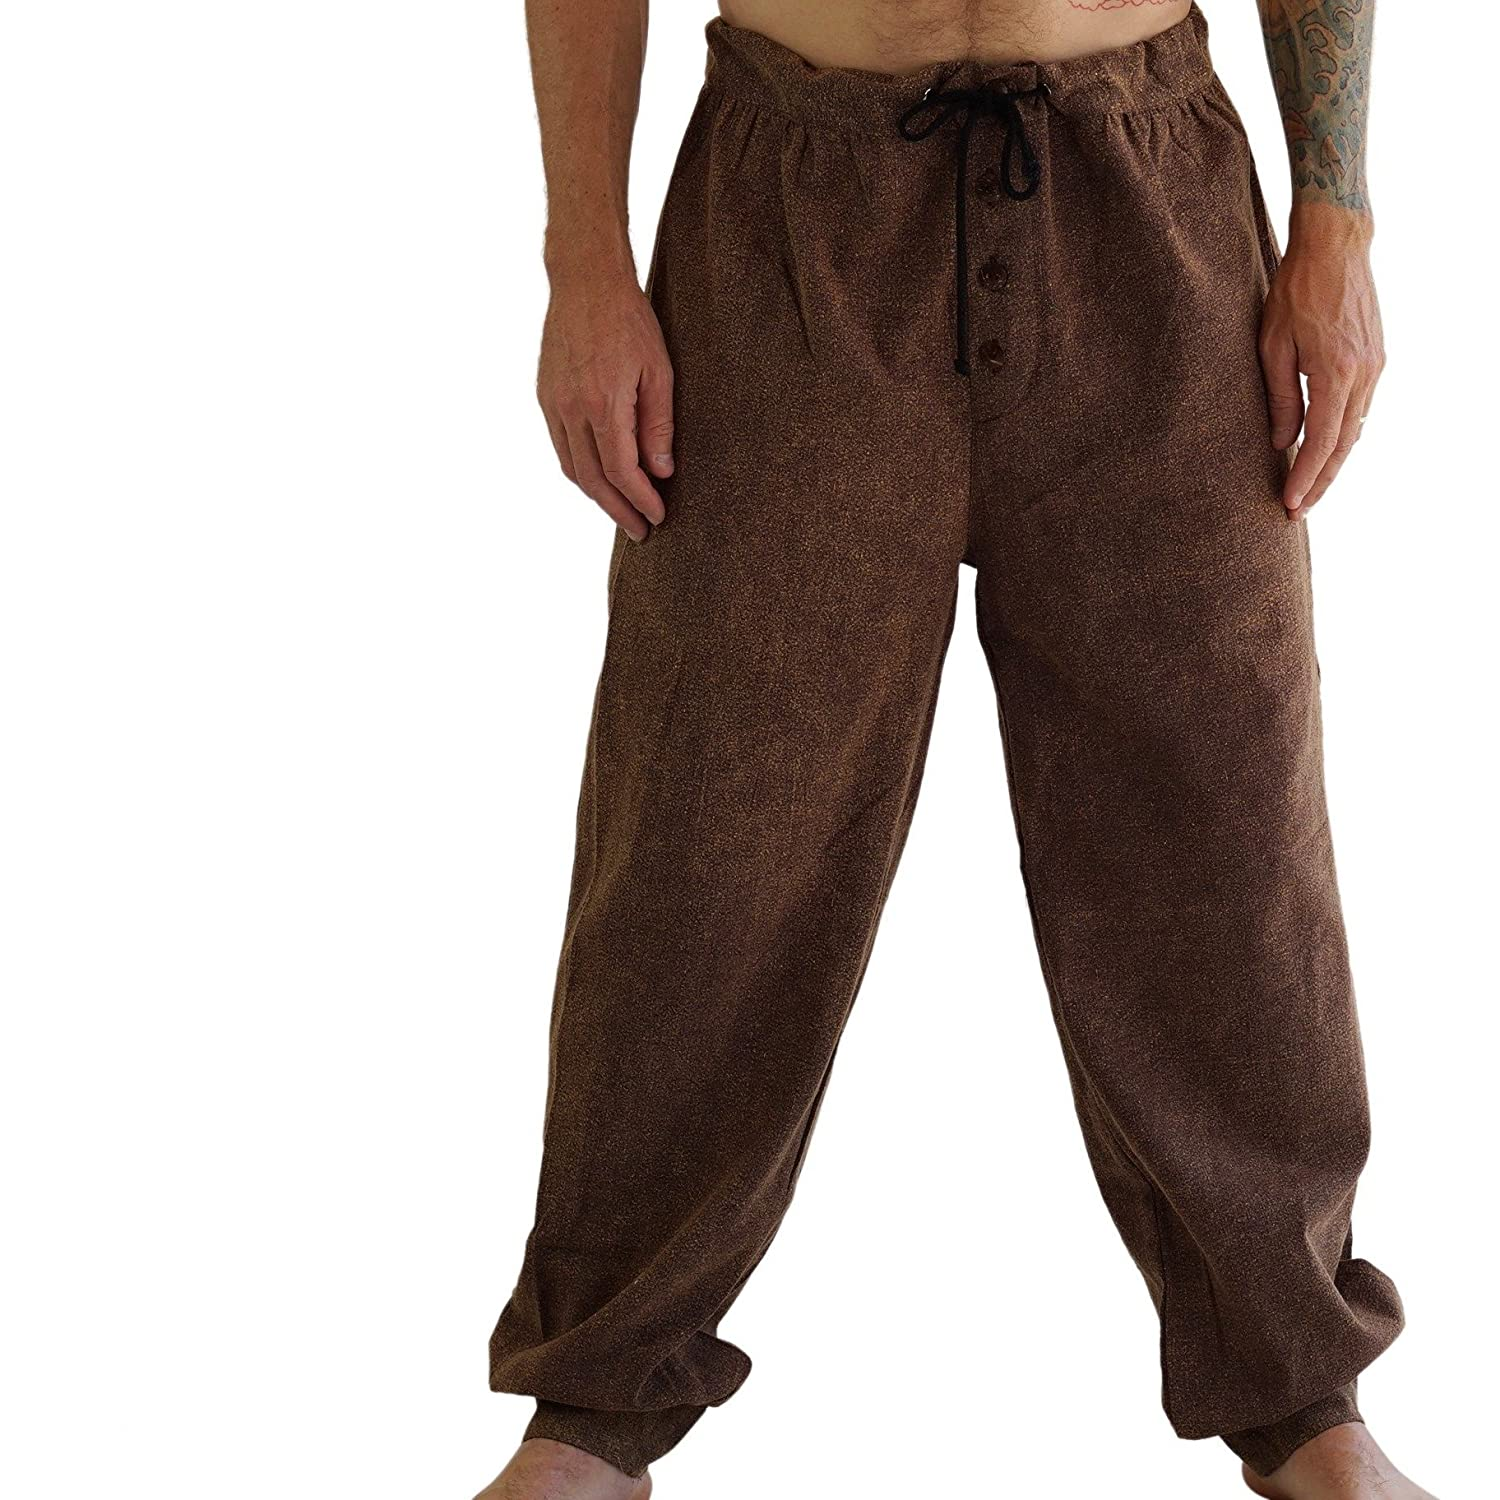 zootzu 'Corsair' Peasant Pants - Stone Brown